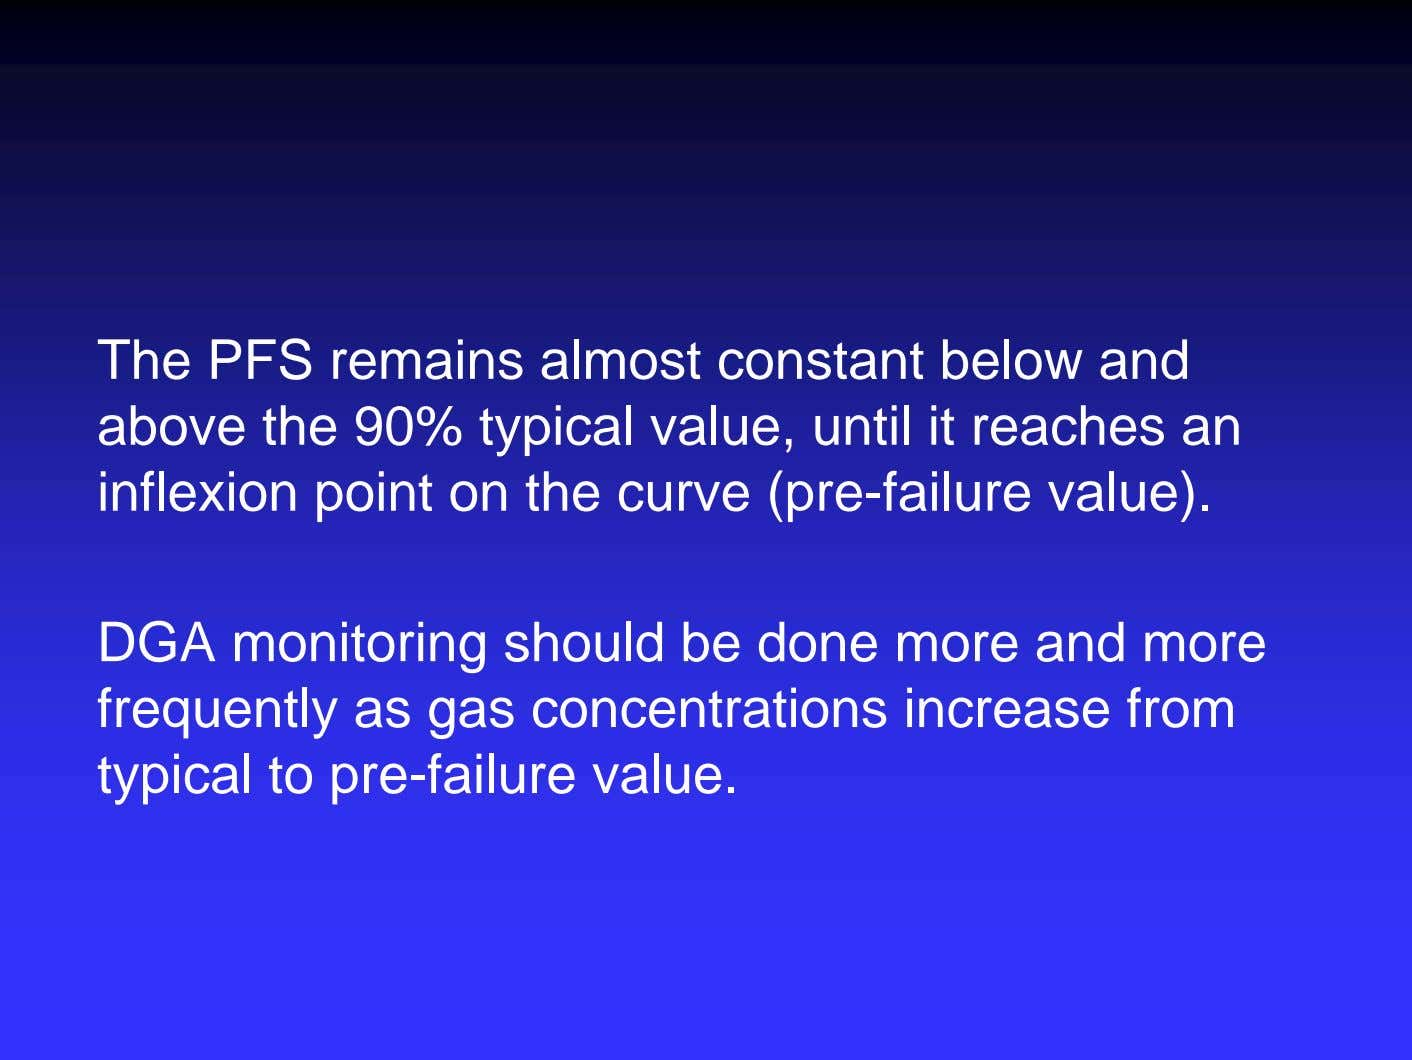 The PFS remains almost constant below and above the 90% typical value, until it reaches